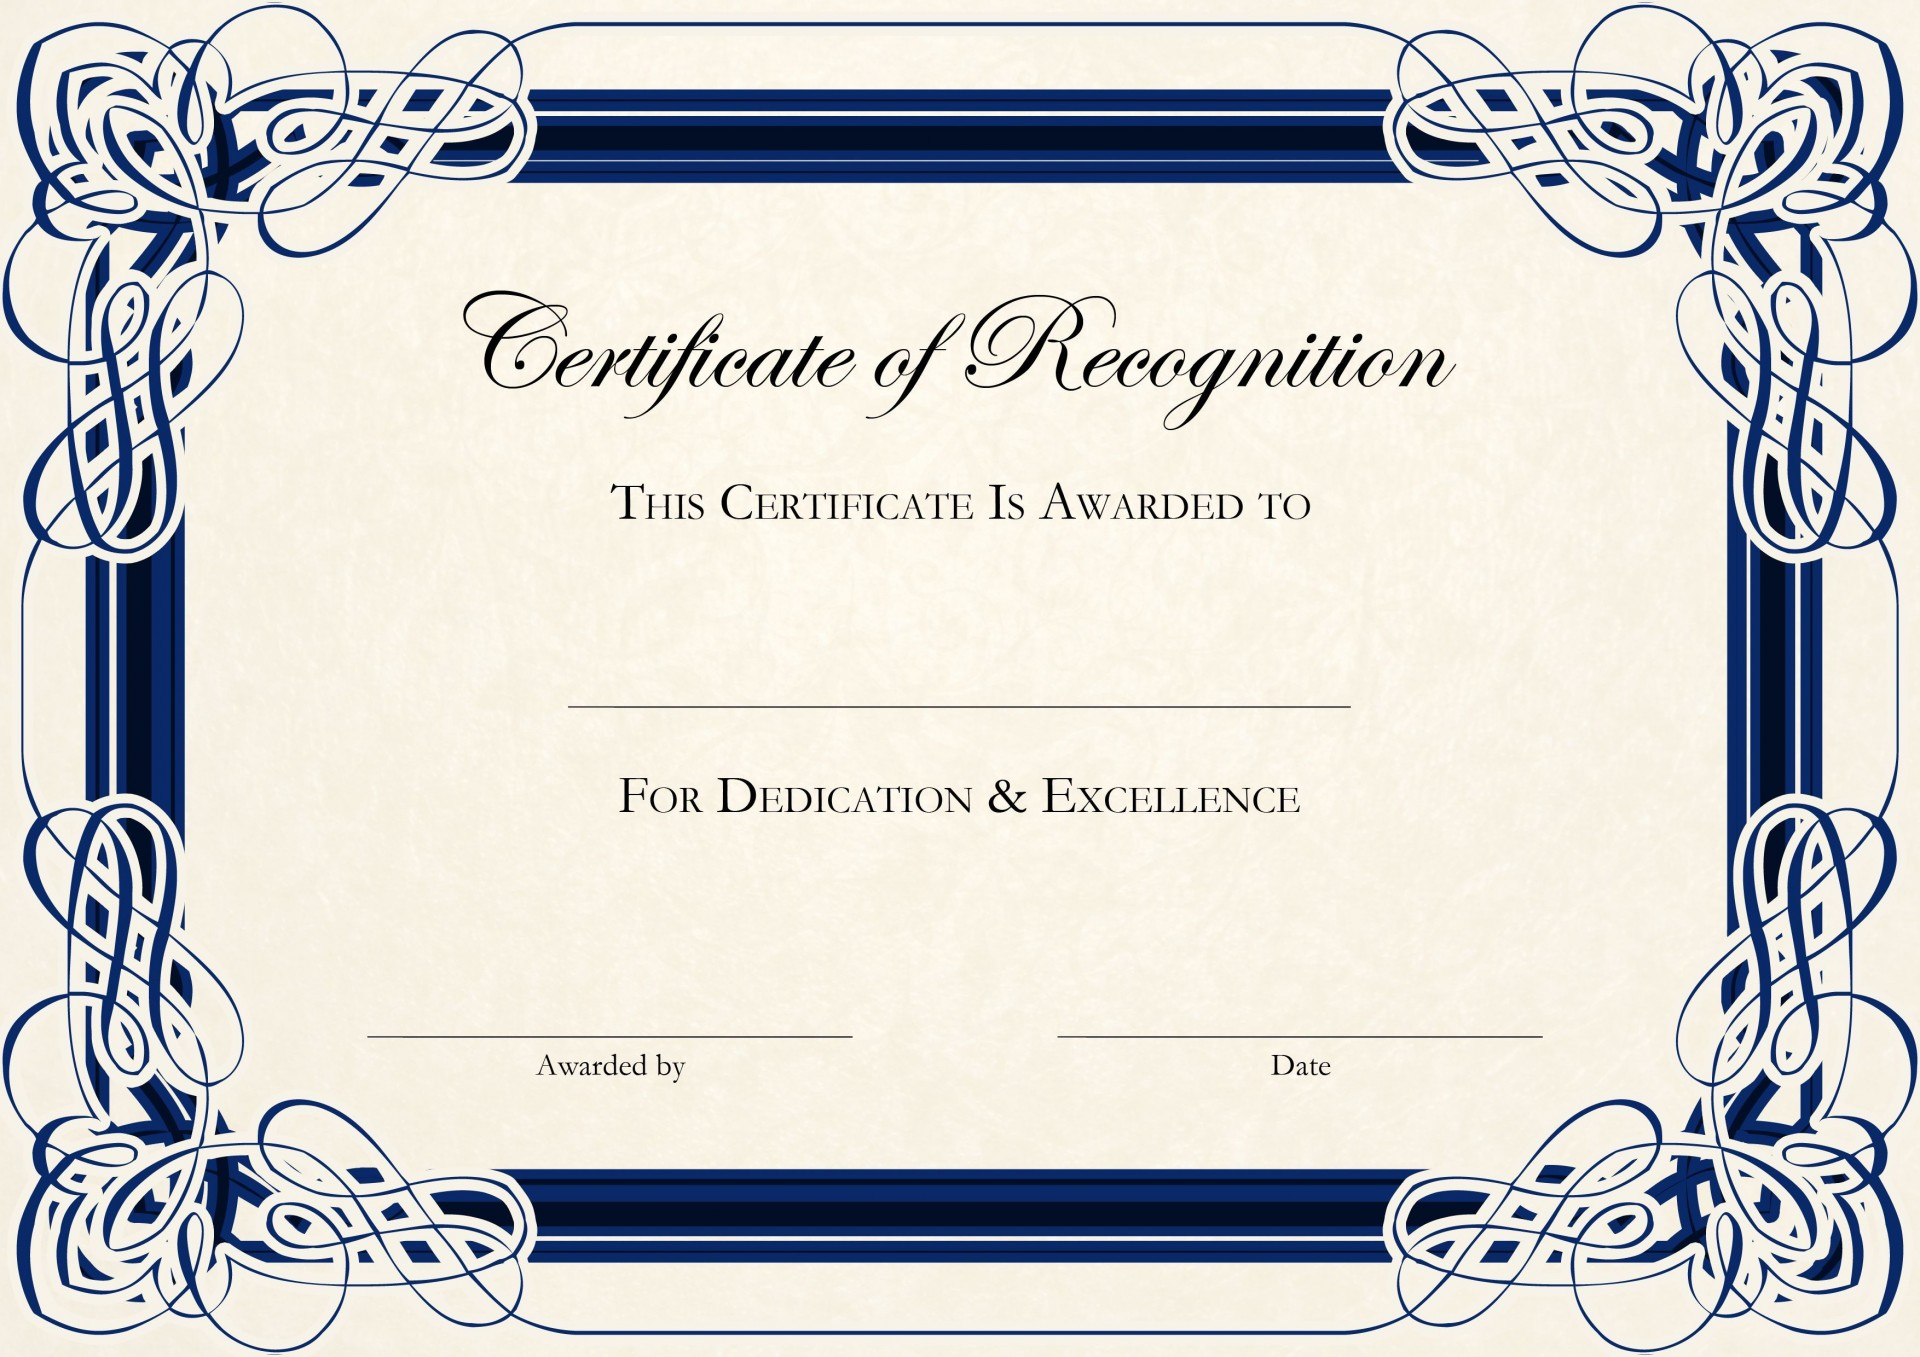 000 Remarkable Free Certificate Template Word Download Picture  Of Appreciation Doc Award Border1920